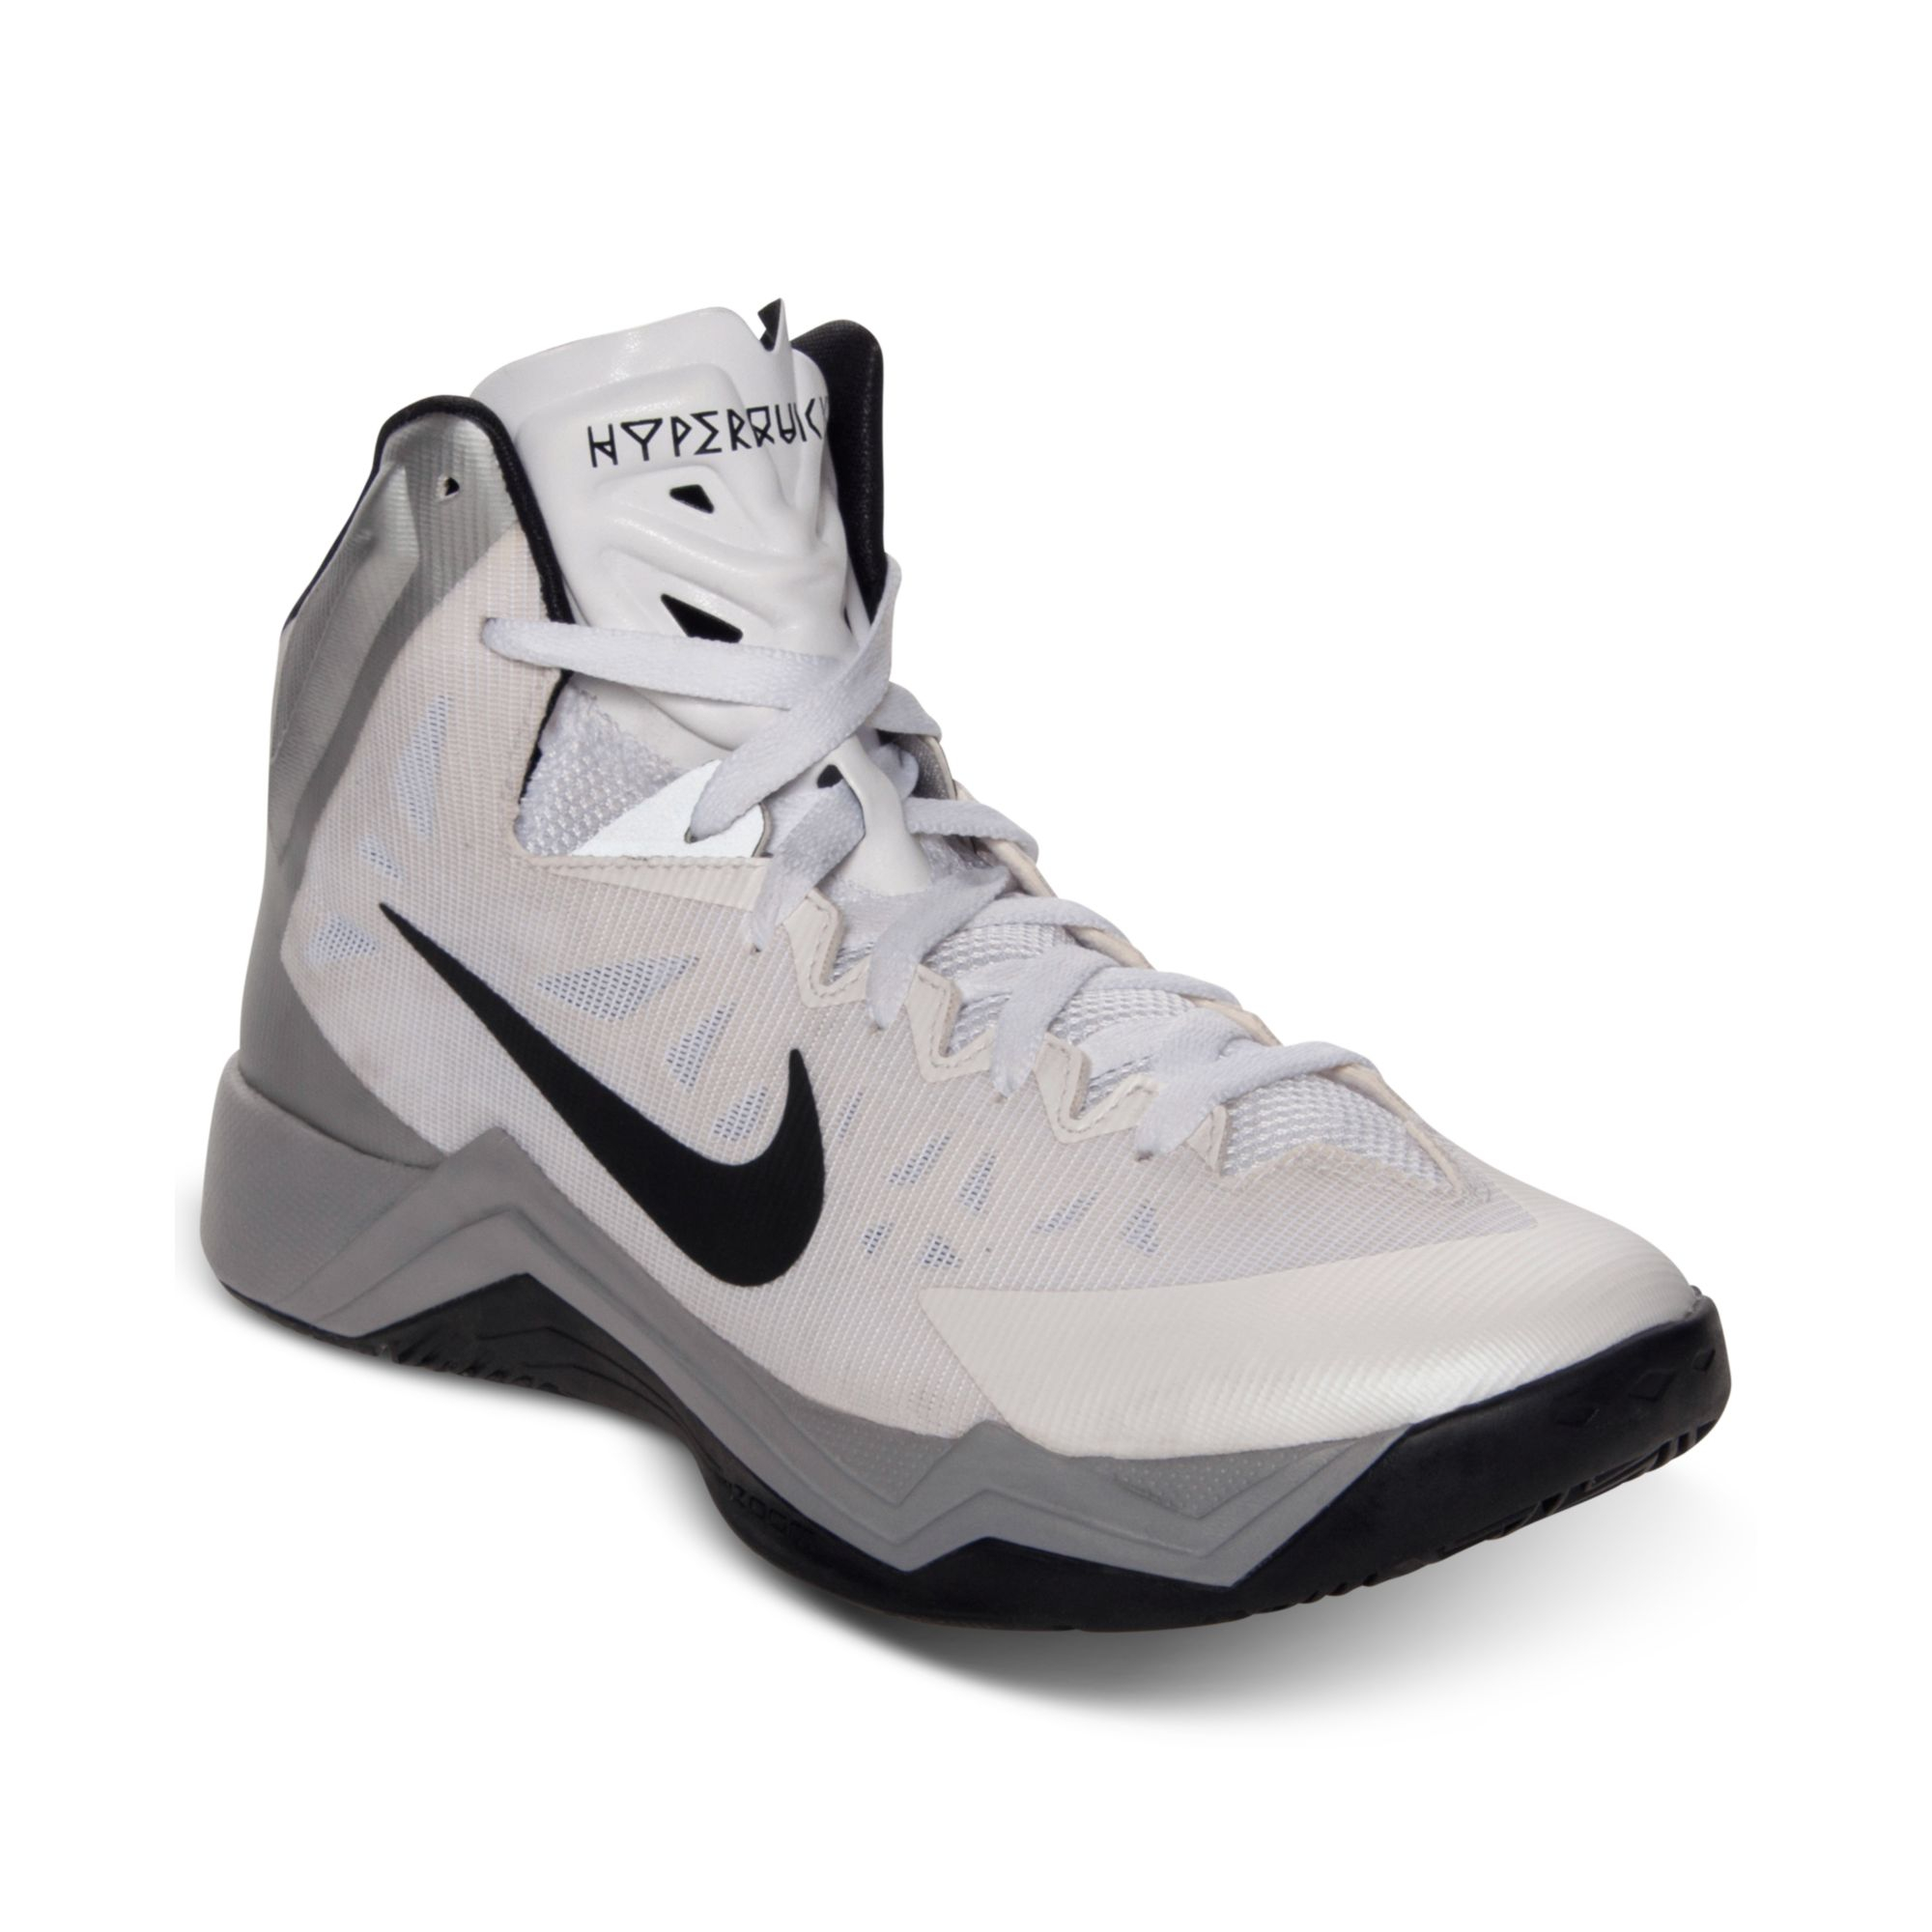 277a277ee3fe Lyst - Nike Hyper Quickness Basketball Sneakers From Finish Line in ...